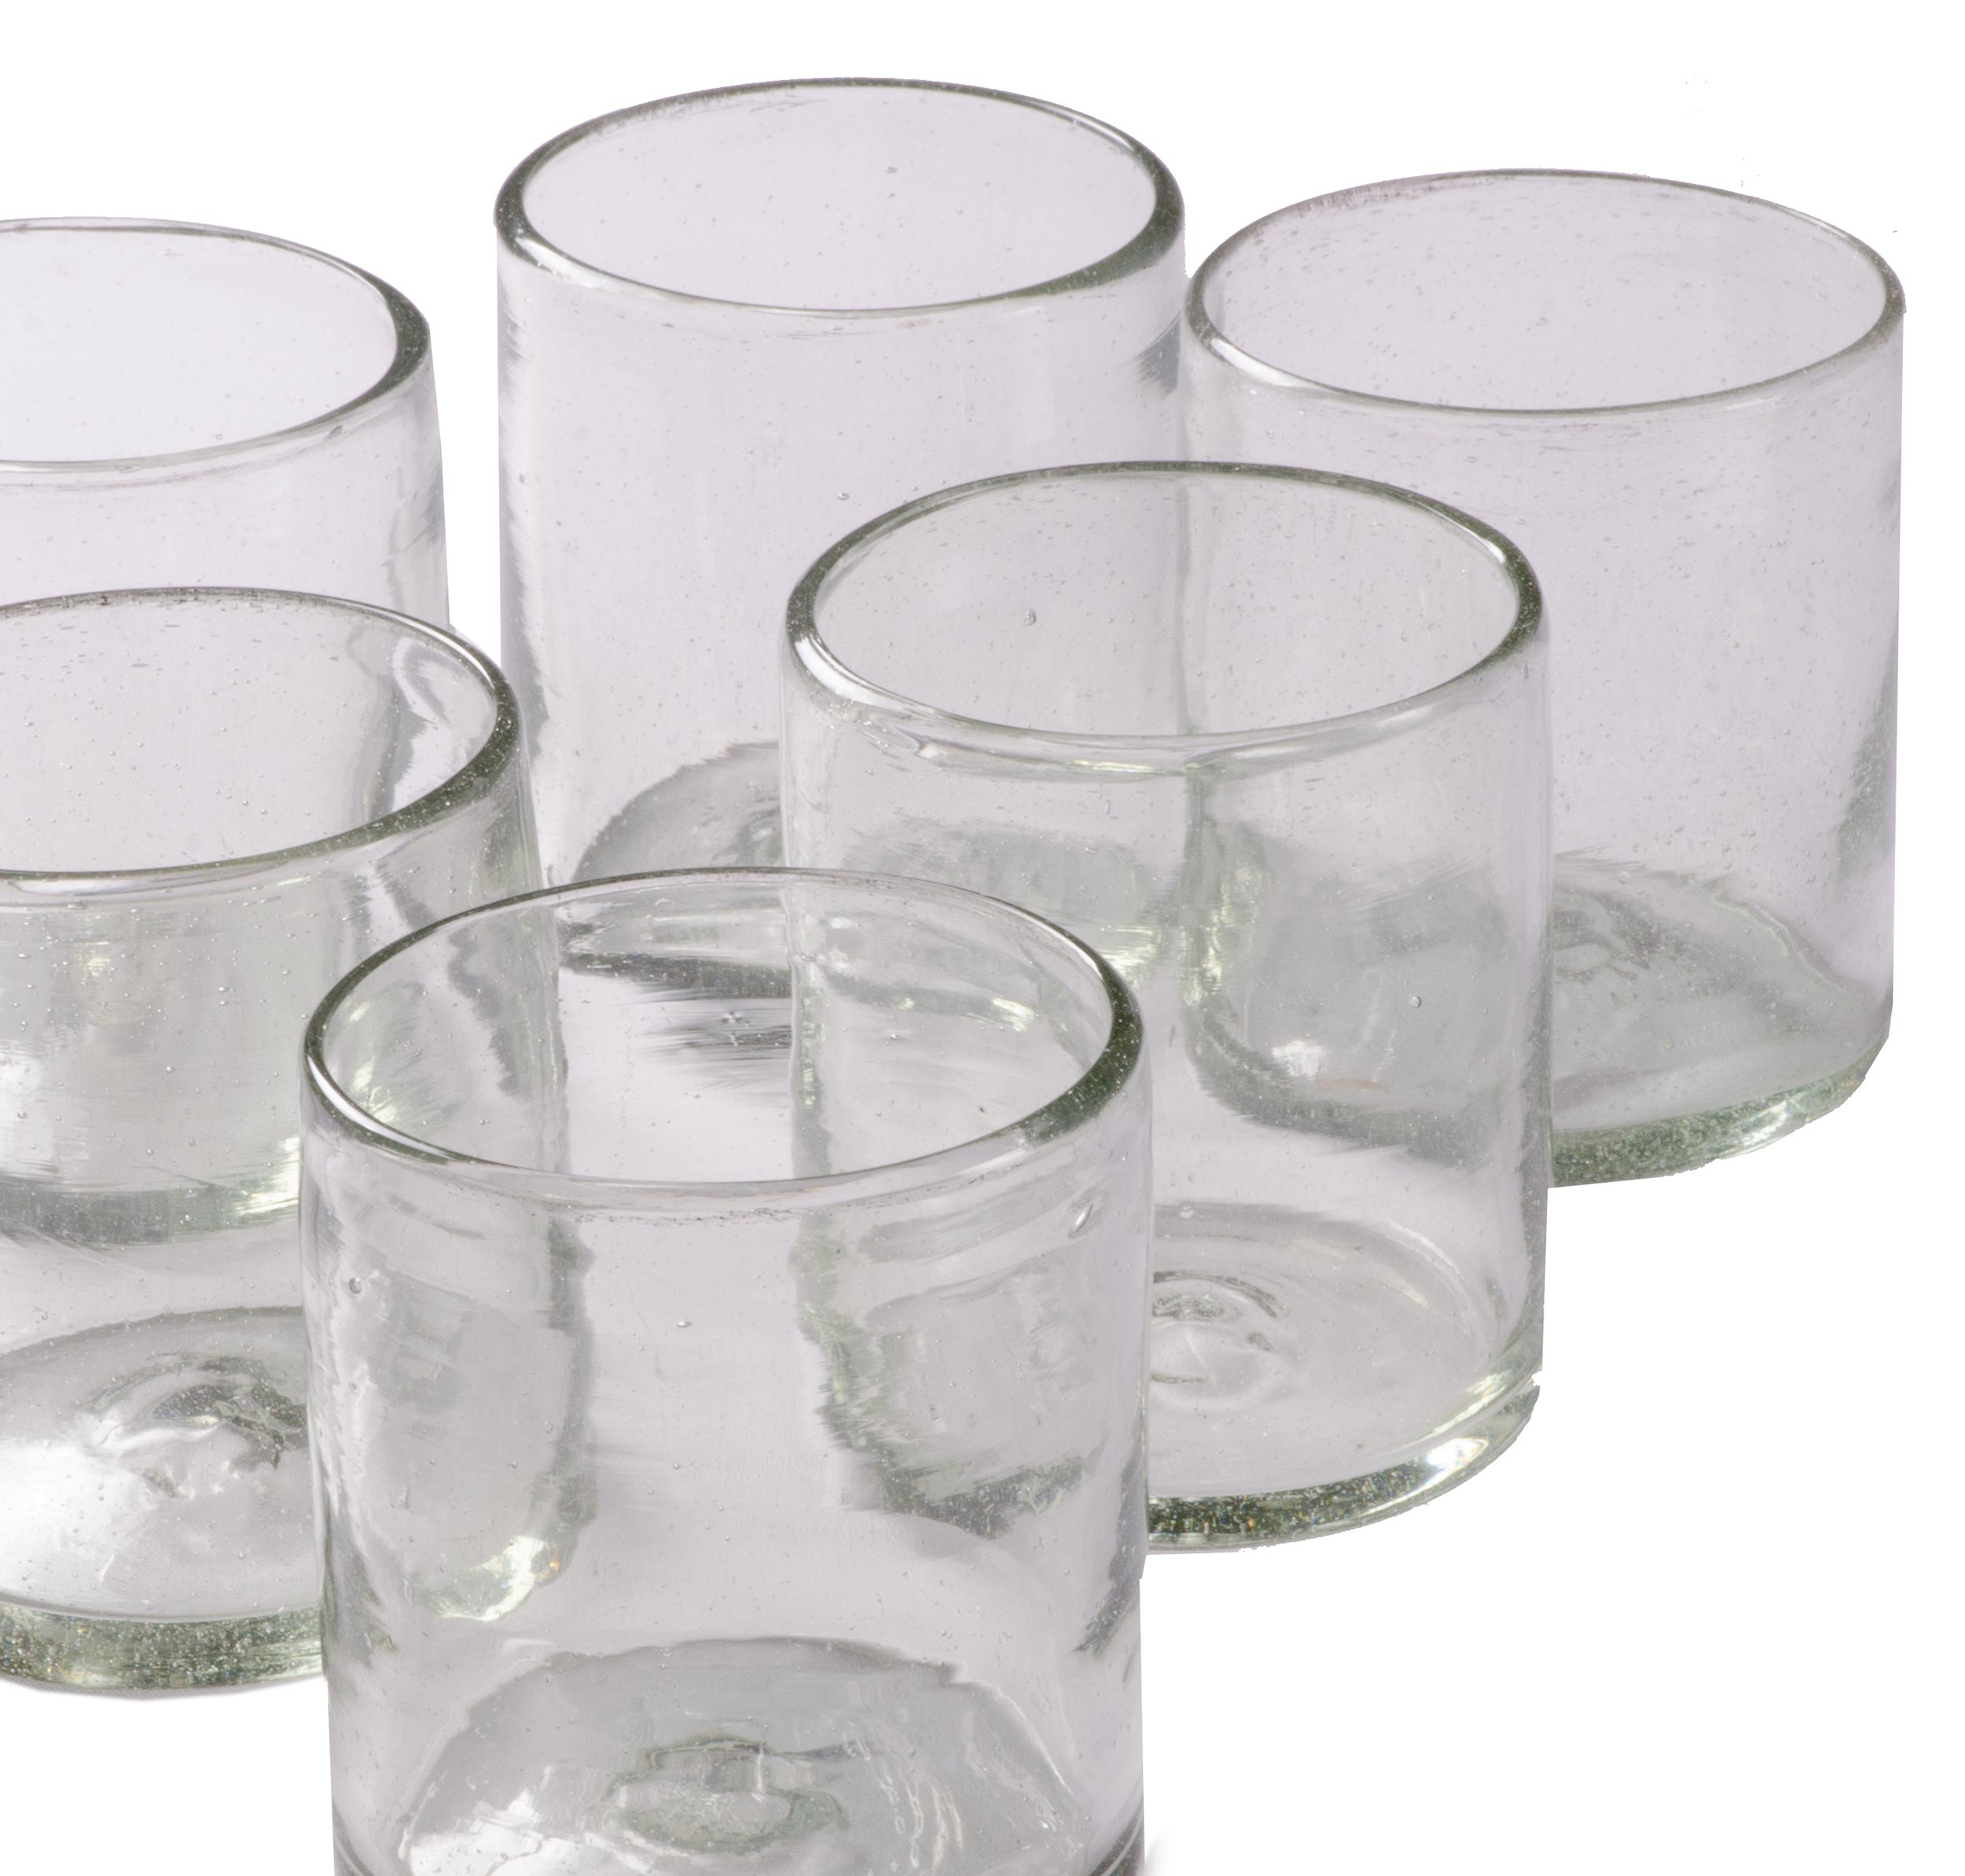 Orion Natural 12 oz All Purpose - Set of 6 - Orion's Table Mexican Glassware